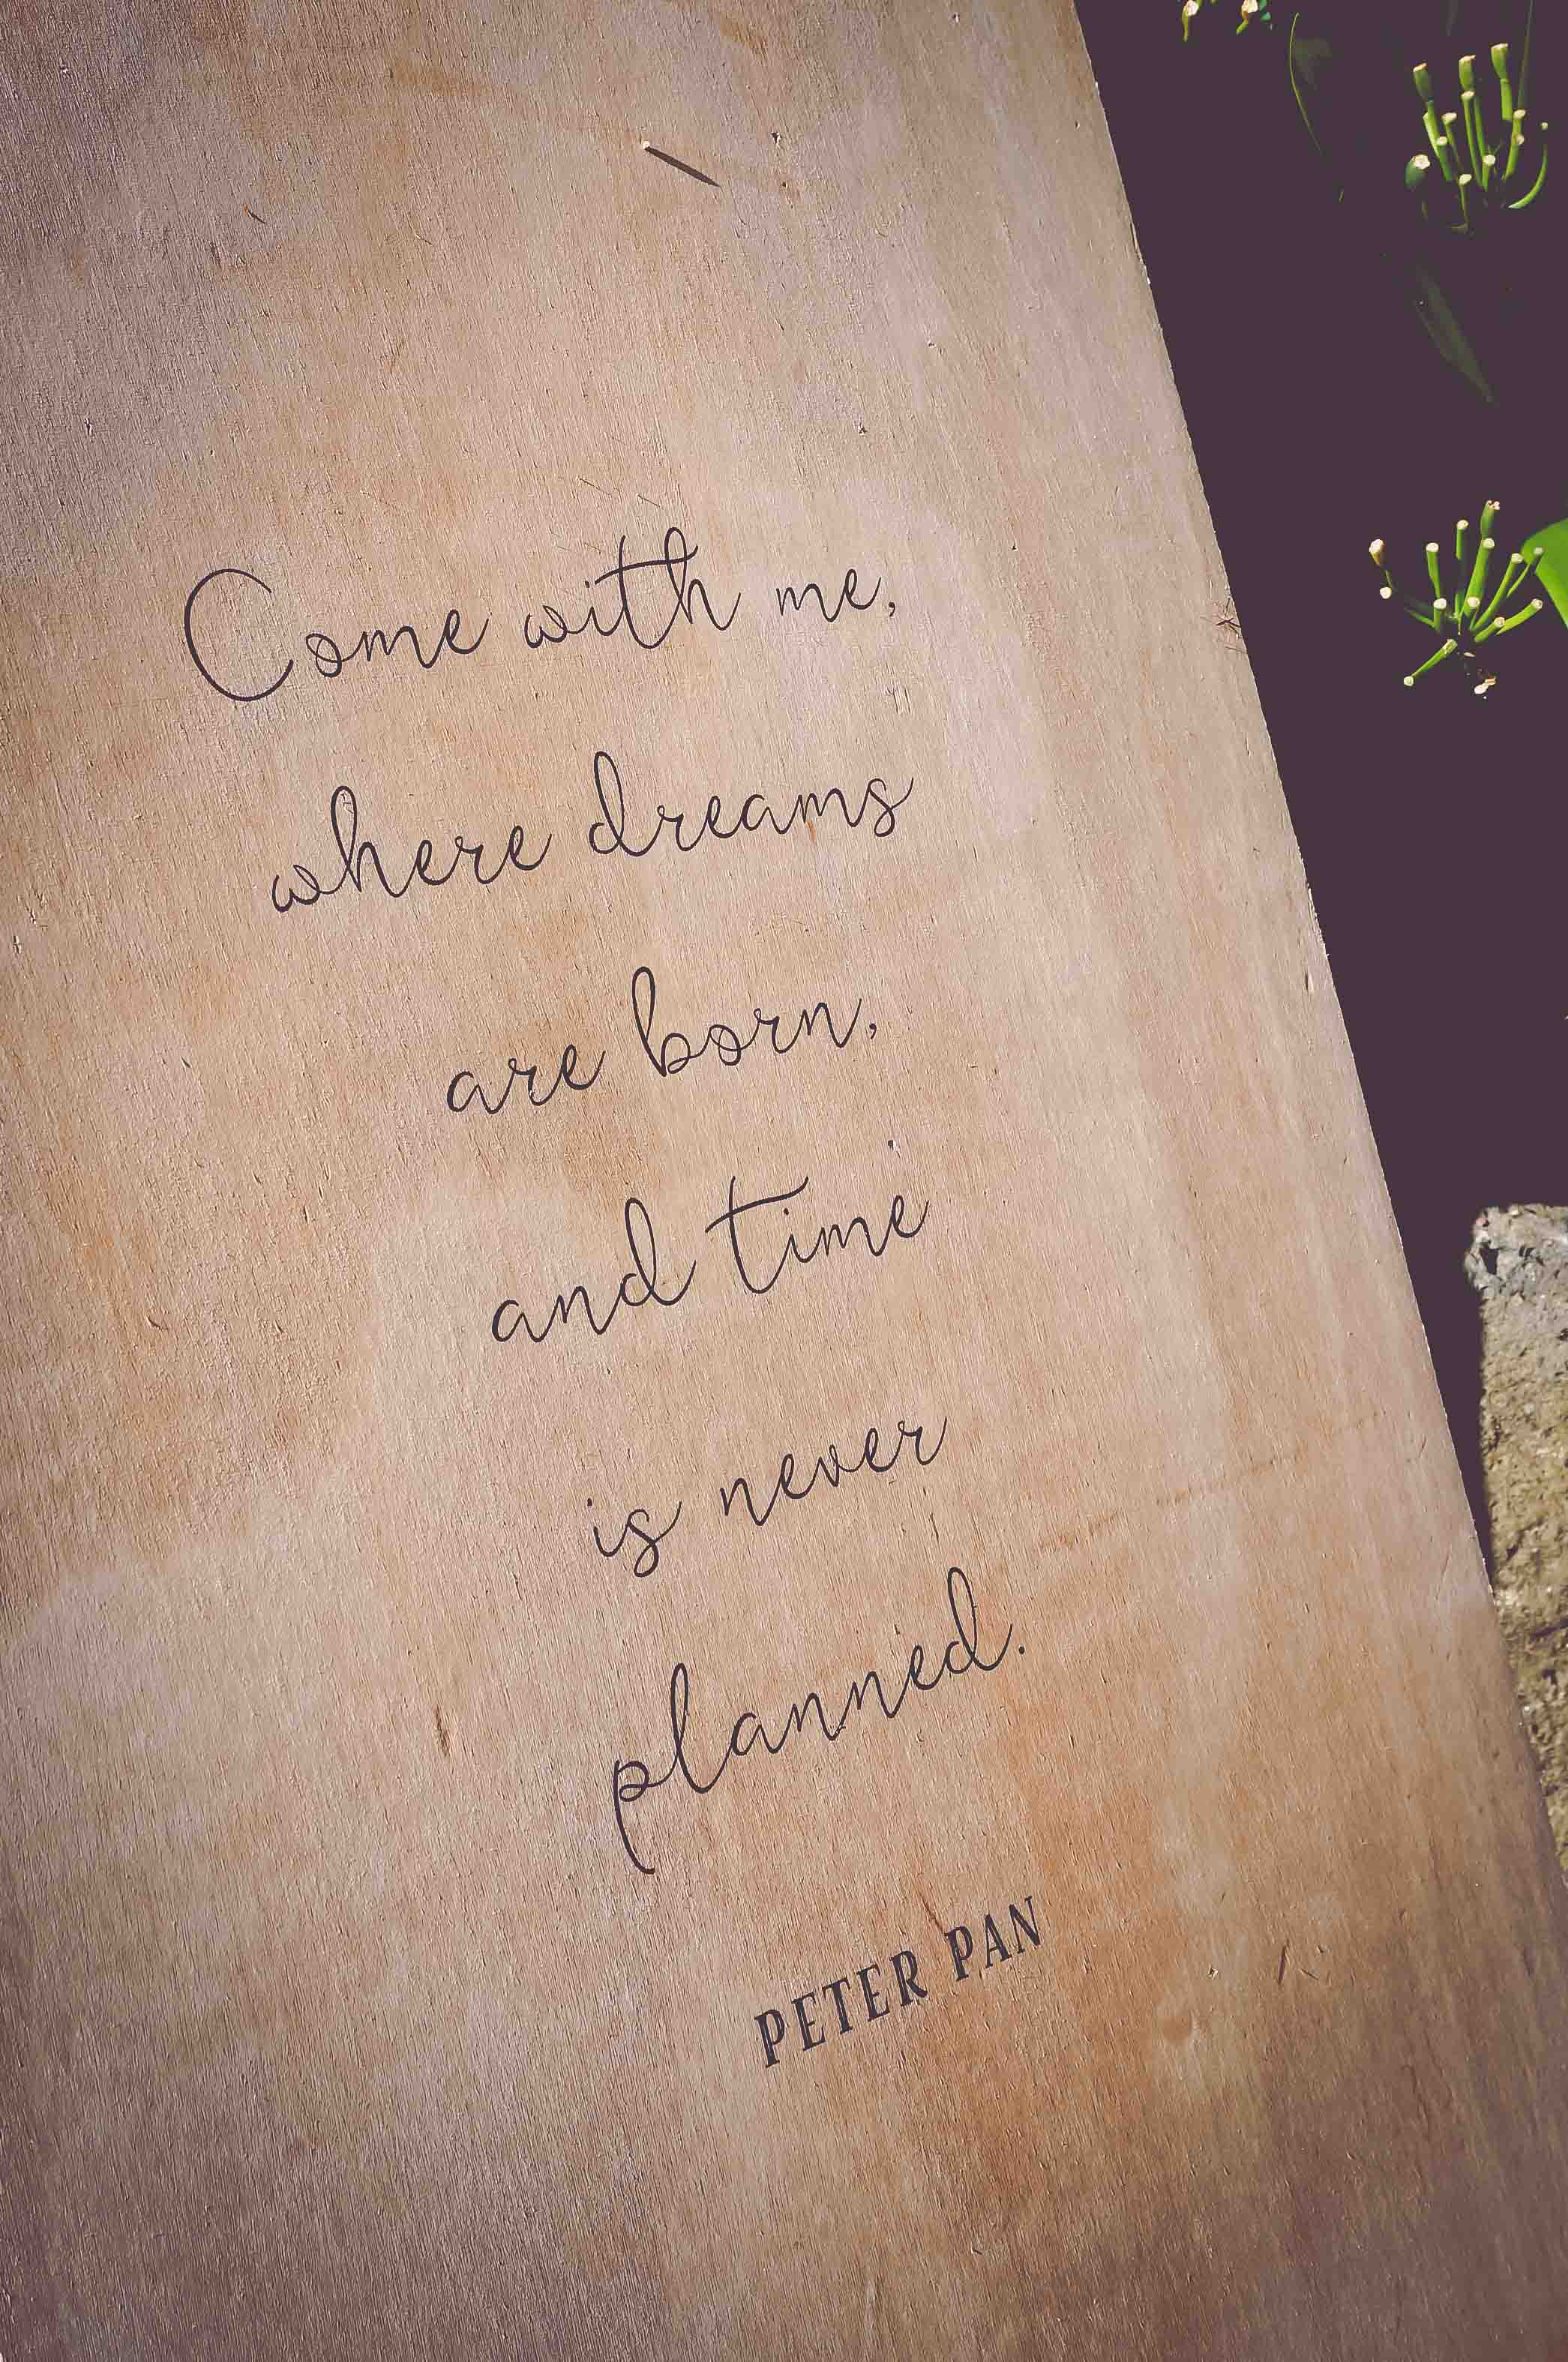 Wedding quote on plywood - Peter Pan